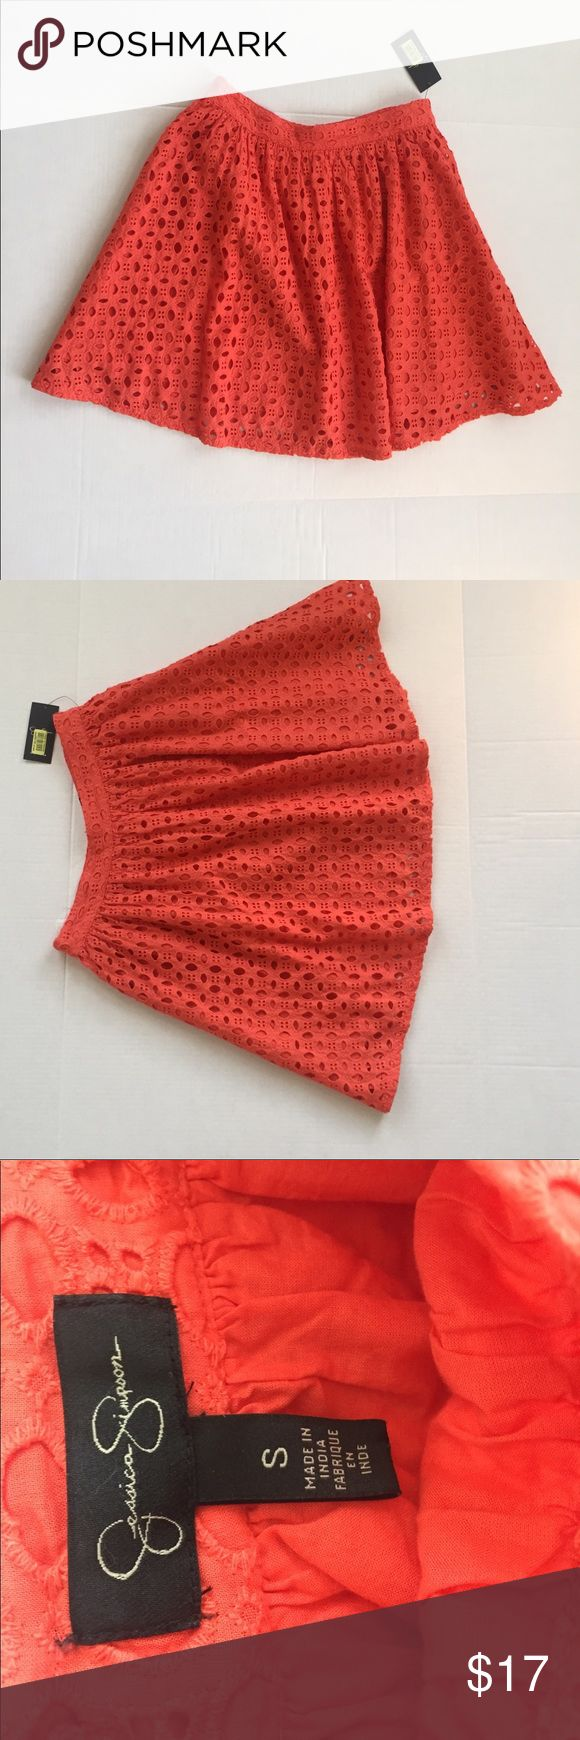 Jessica Simpson hot coral skirt Zipper in the back with clasp, never worn, small, brand new with tags Jessica Simpson Skirts